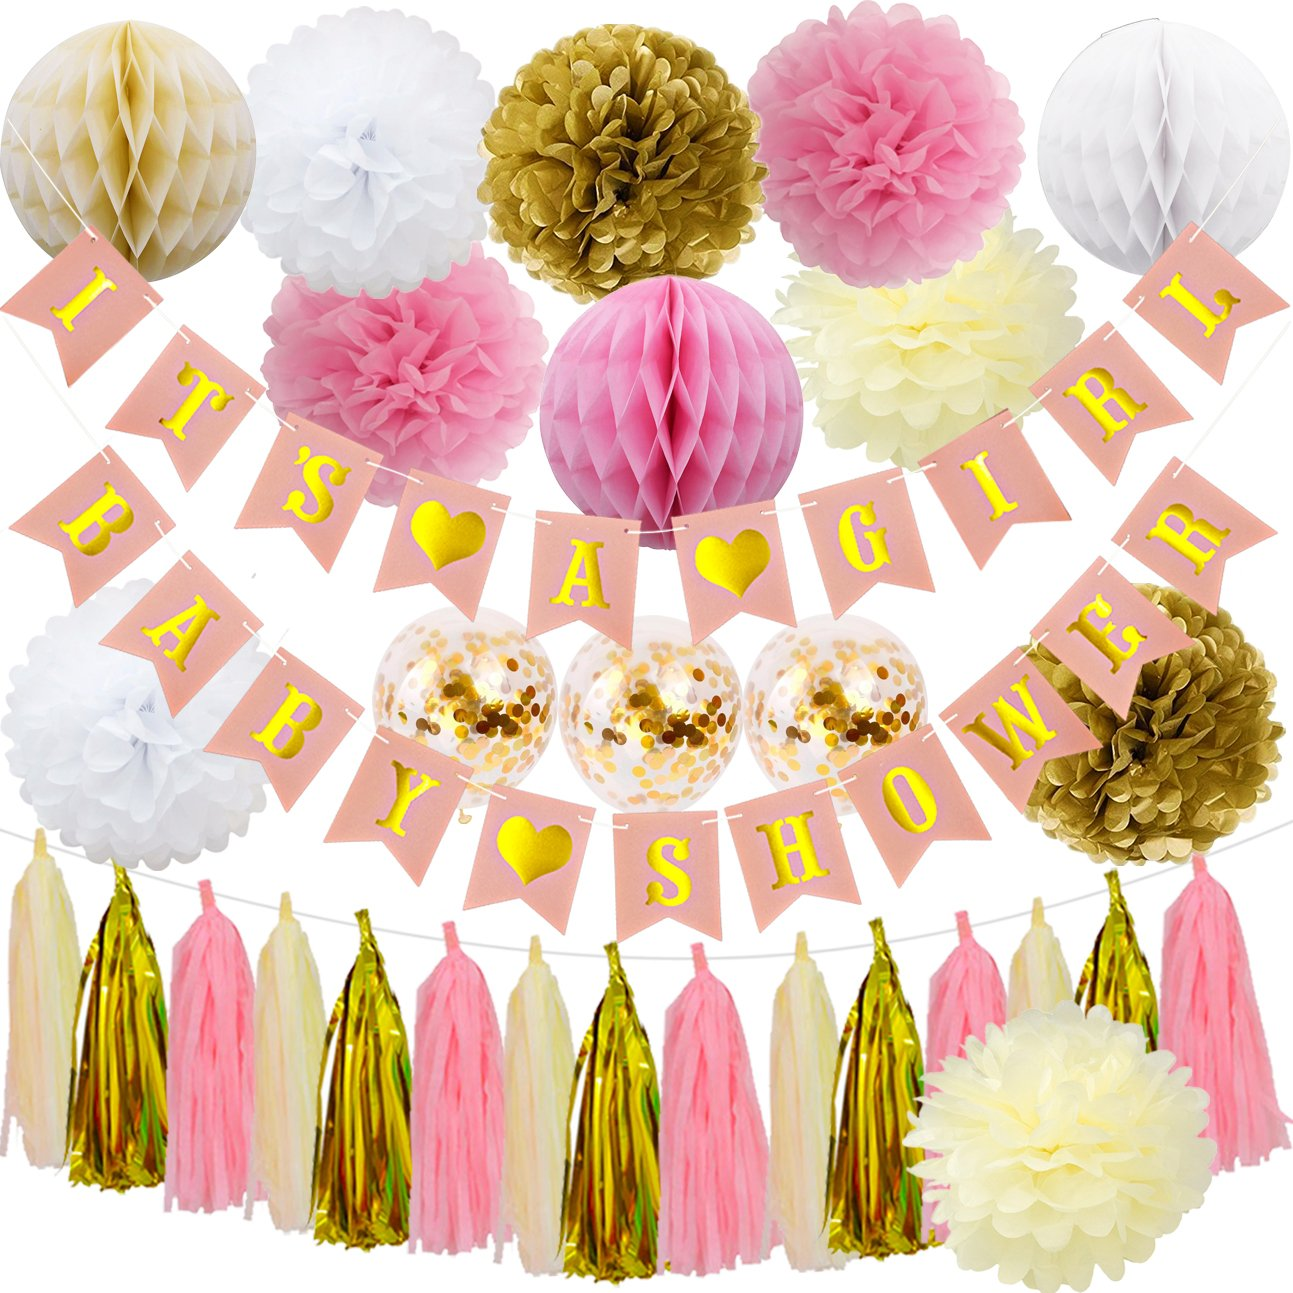 Baby Girl Baby Shower Decorations, It's a Girl Baby Shower Banner with Paper Honeycomb Balls, Pom Poms, Confetti Balloons, Cute for Gender Reveal Parties Nursery Decoration SG029